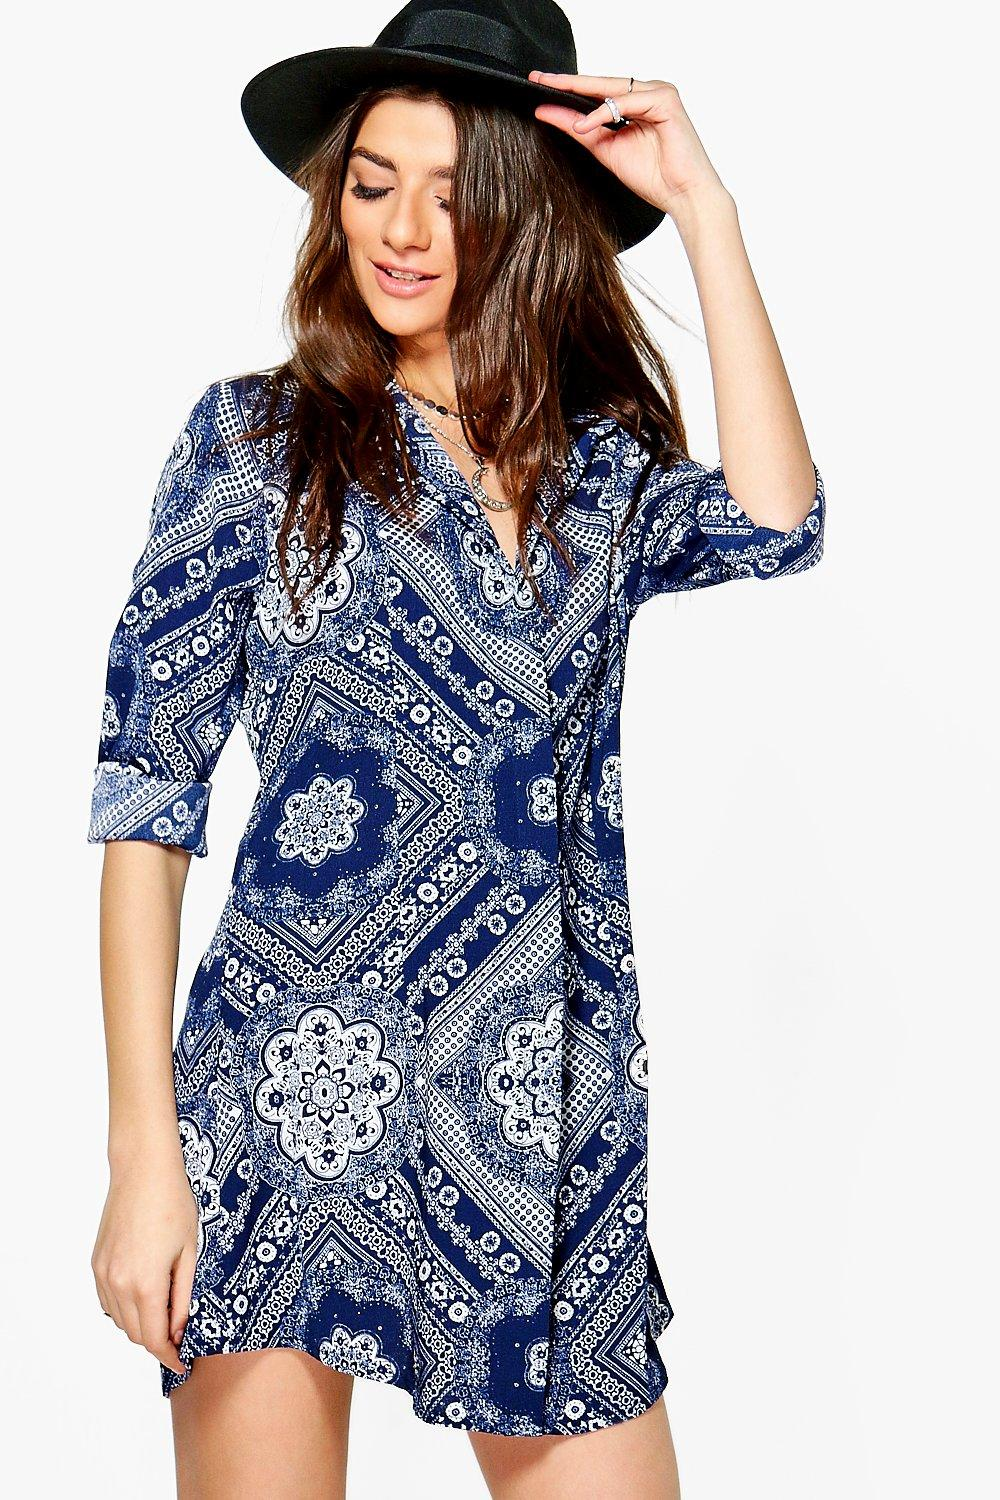 boohoo alainia robe chemise motif cachemire monochrome pour femme ebay. Black Bedroom Furniture Sets. Home Design Ideas